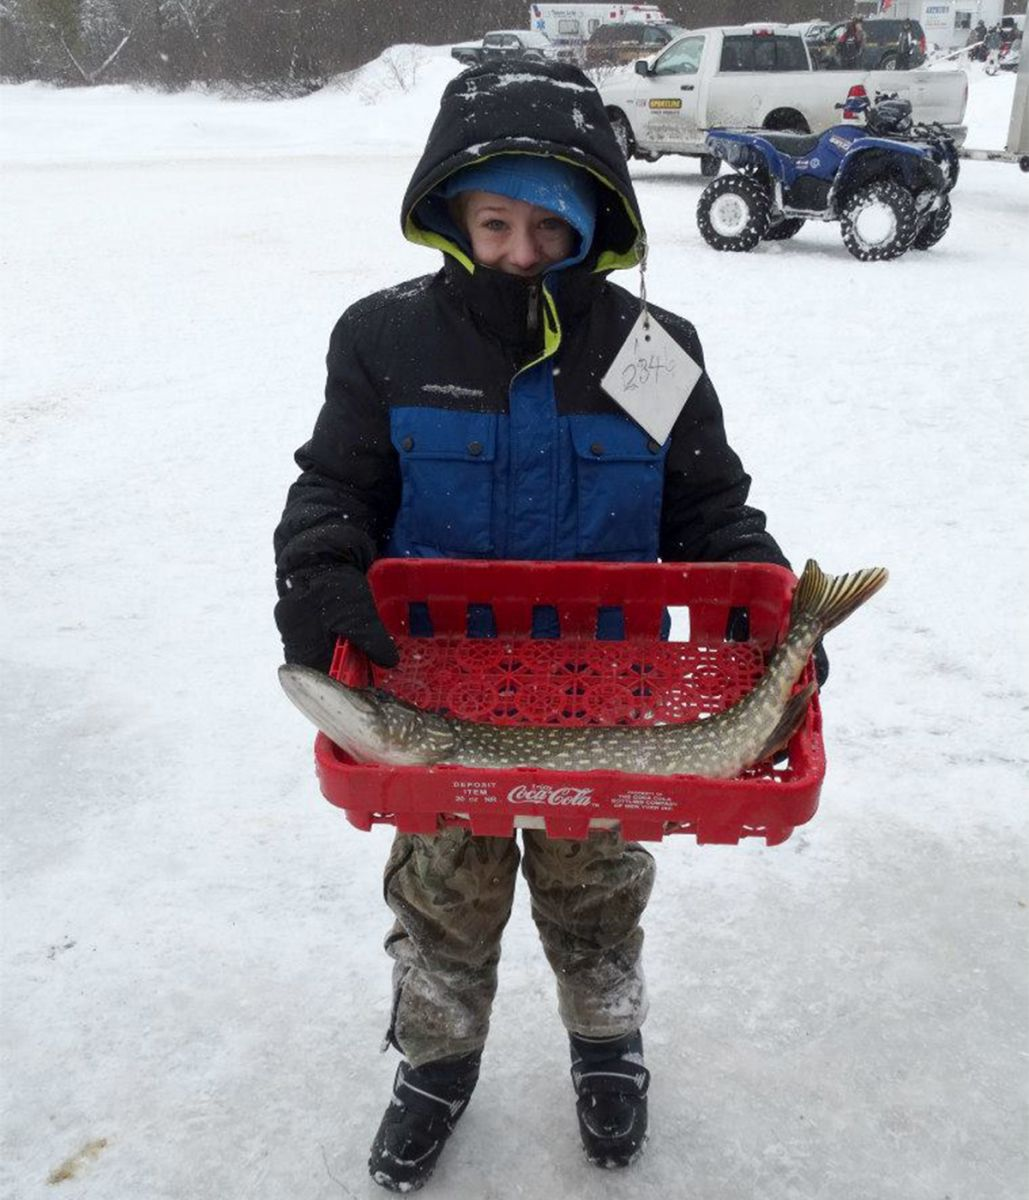 Dress for success ice fishing edition tupper lake for Kids fishing gear